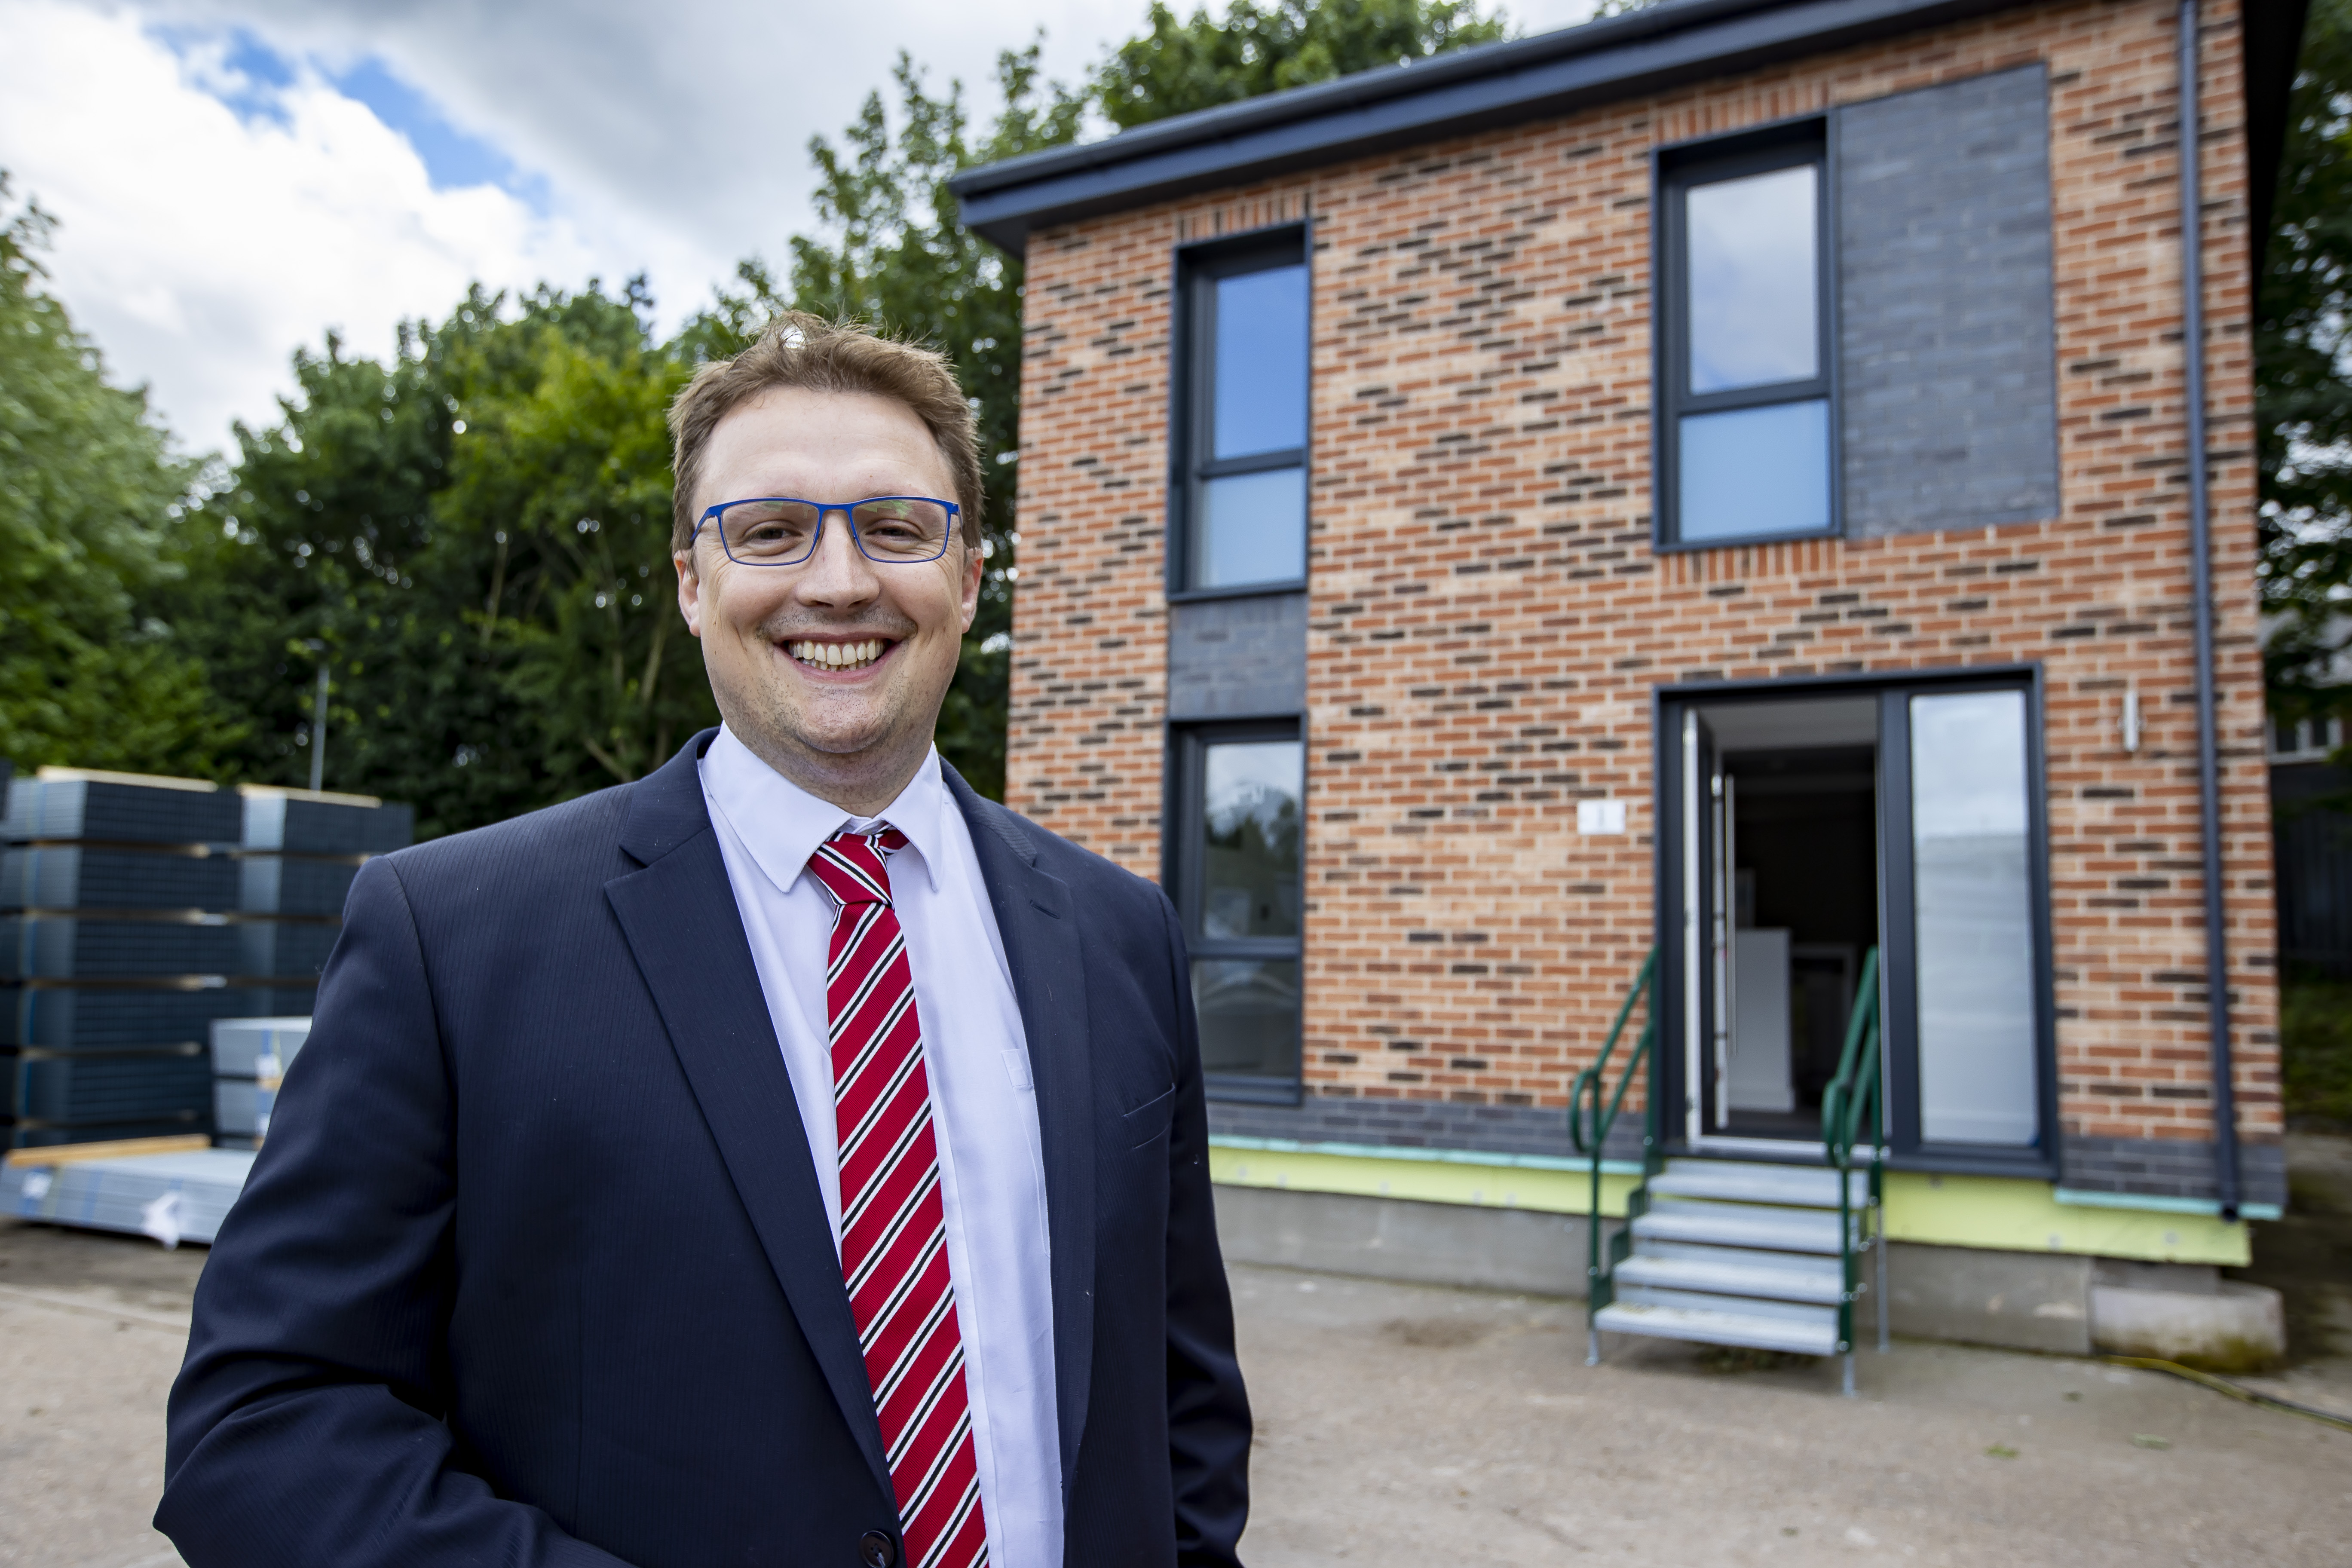 Ambitious plan launched to retrofit 50,000 homes across the West Midlands